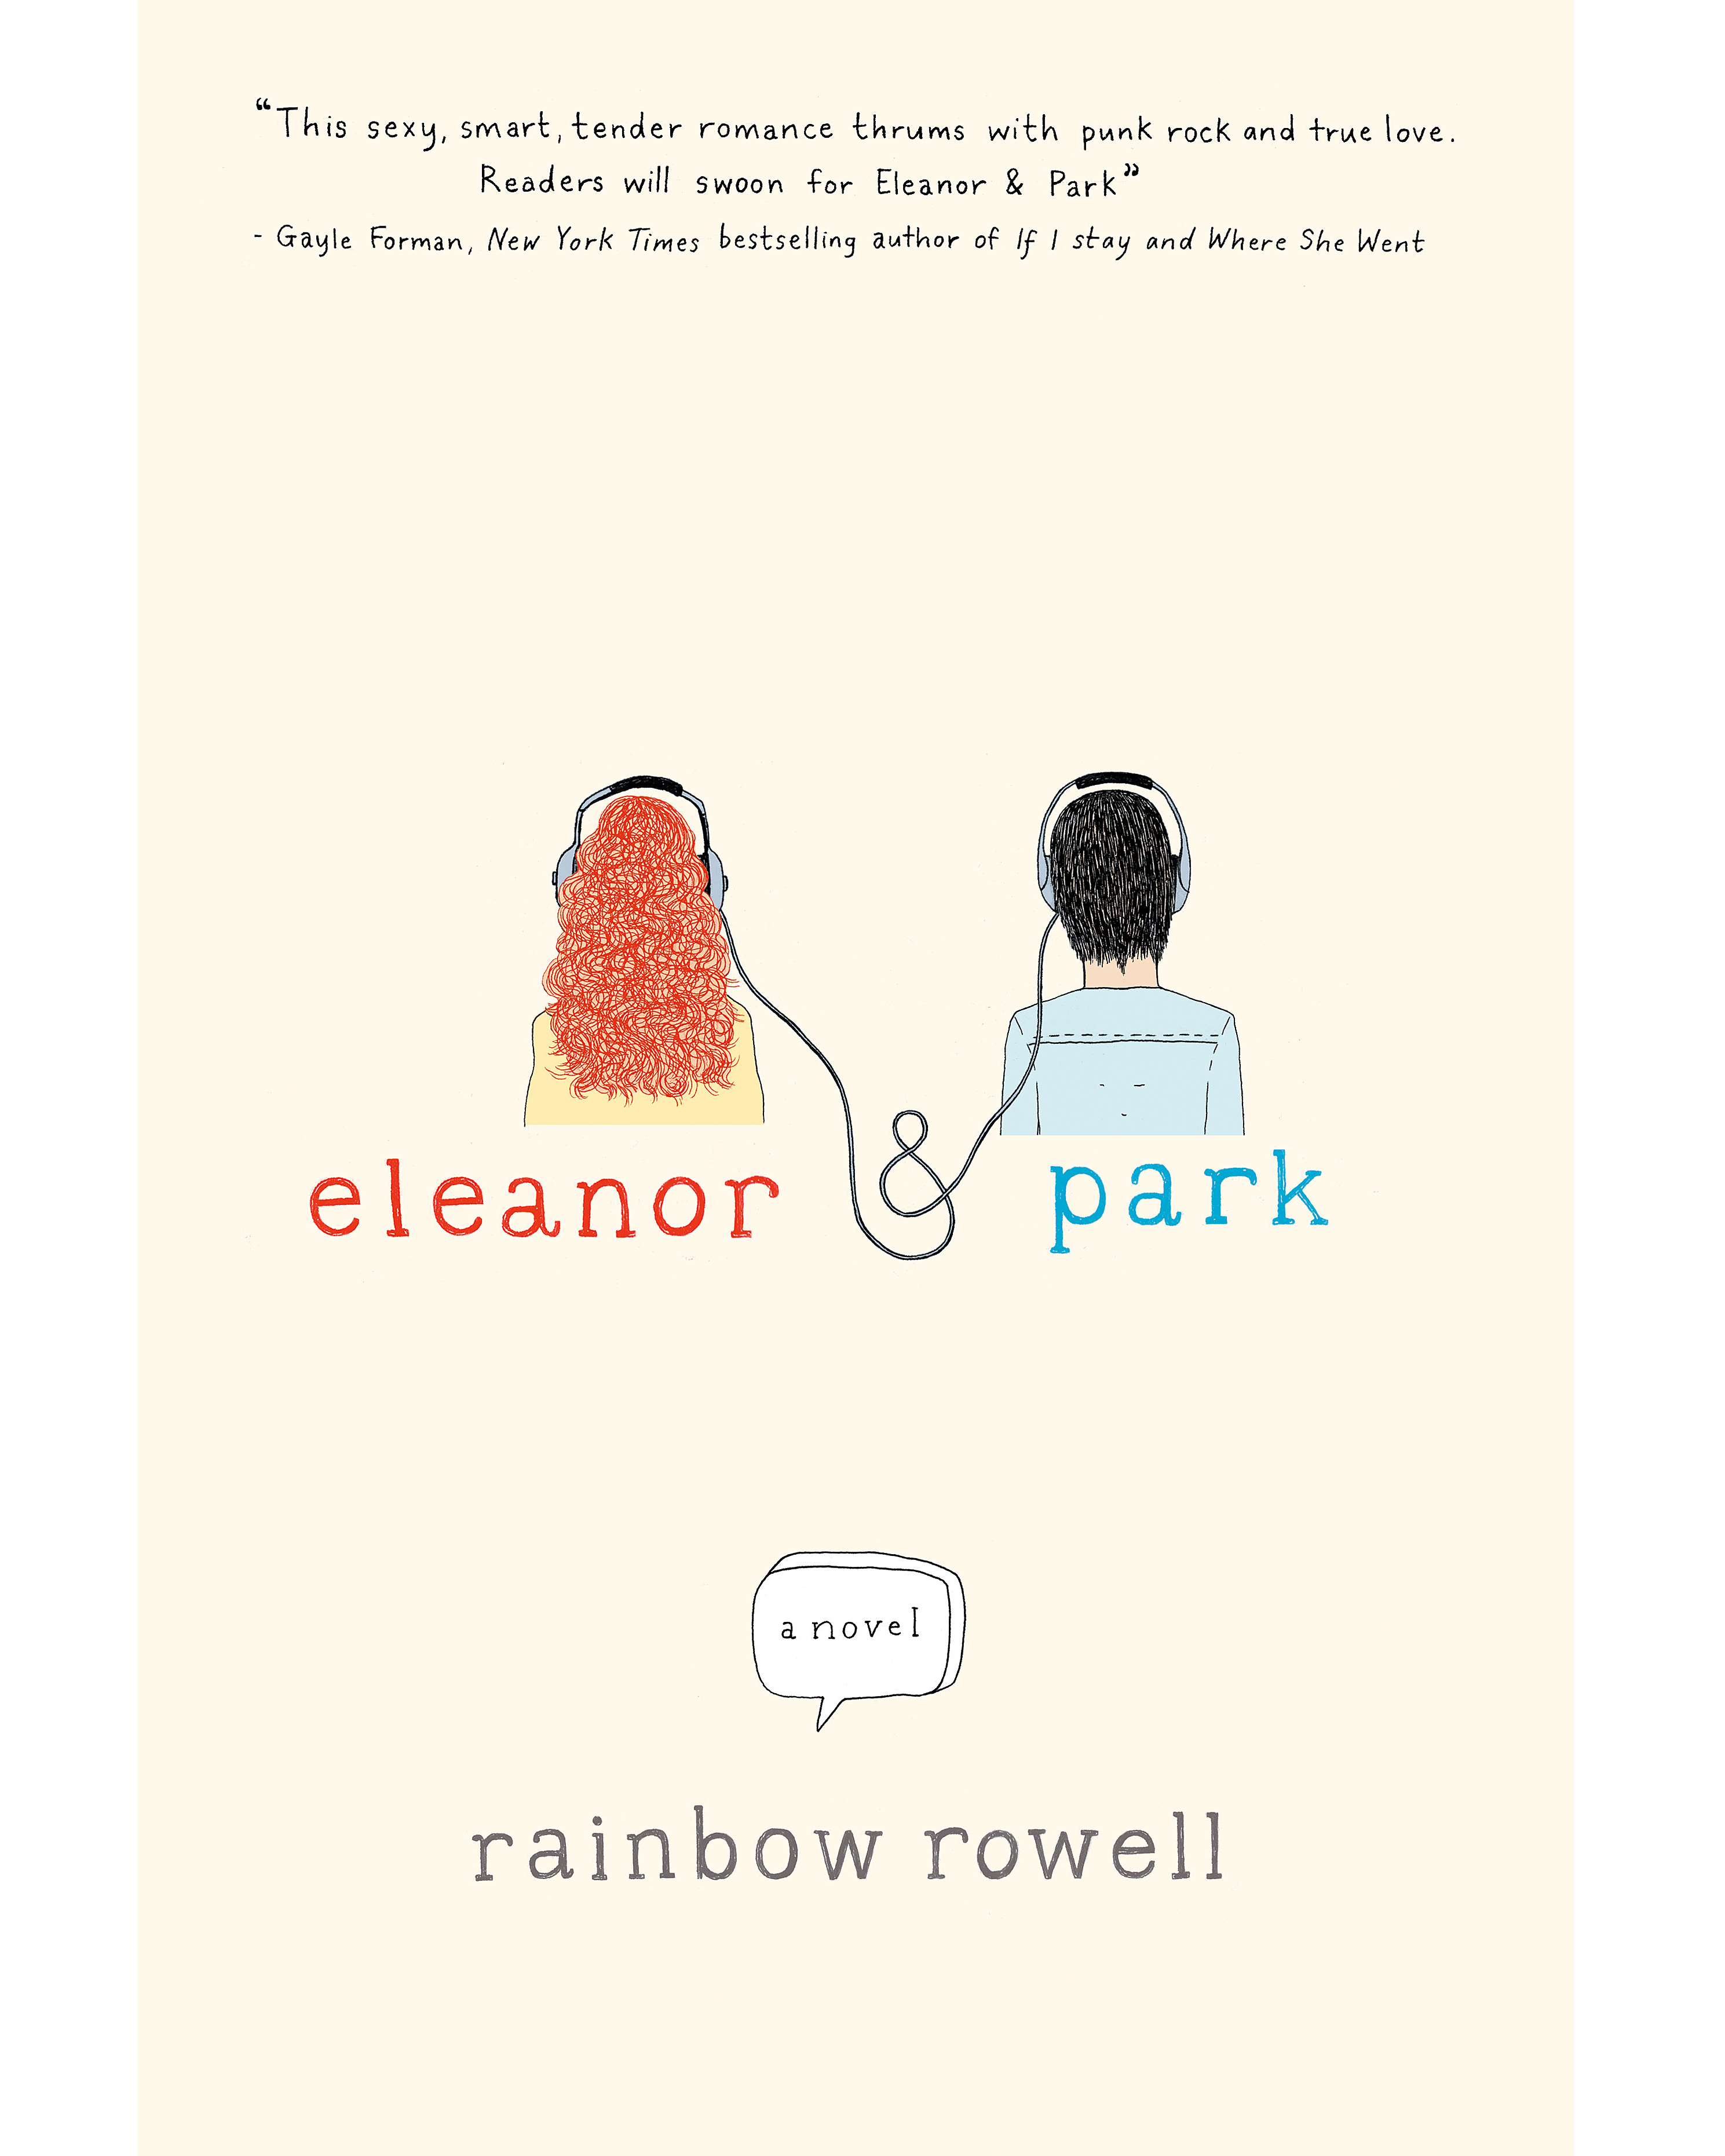 books-read-before-marriage-eleanor-park-rowell-0115.jpg